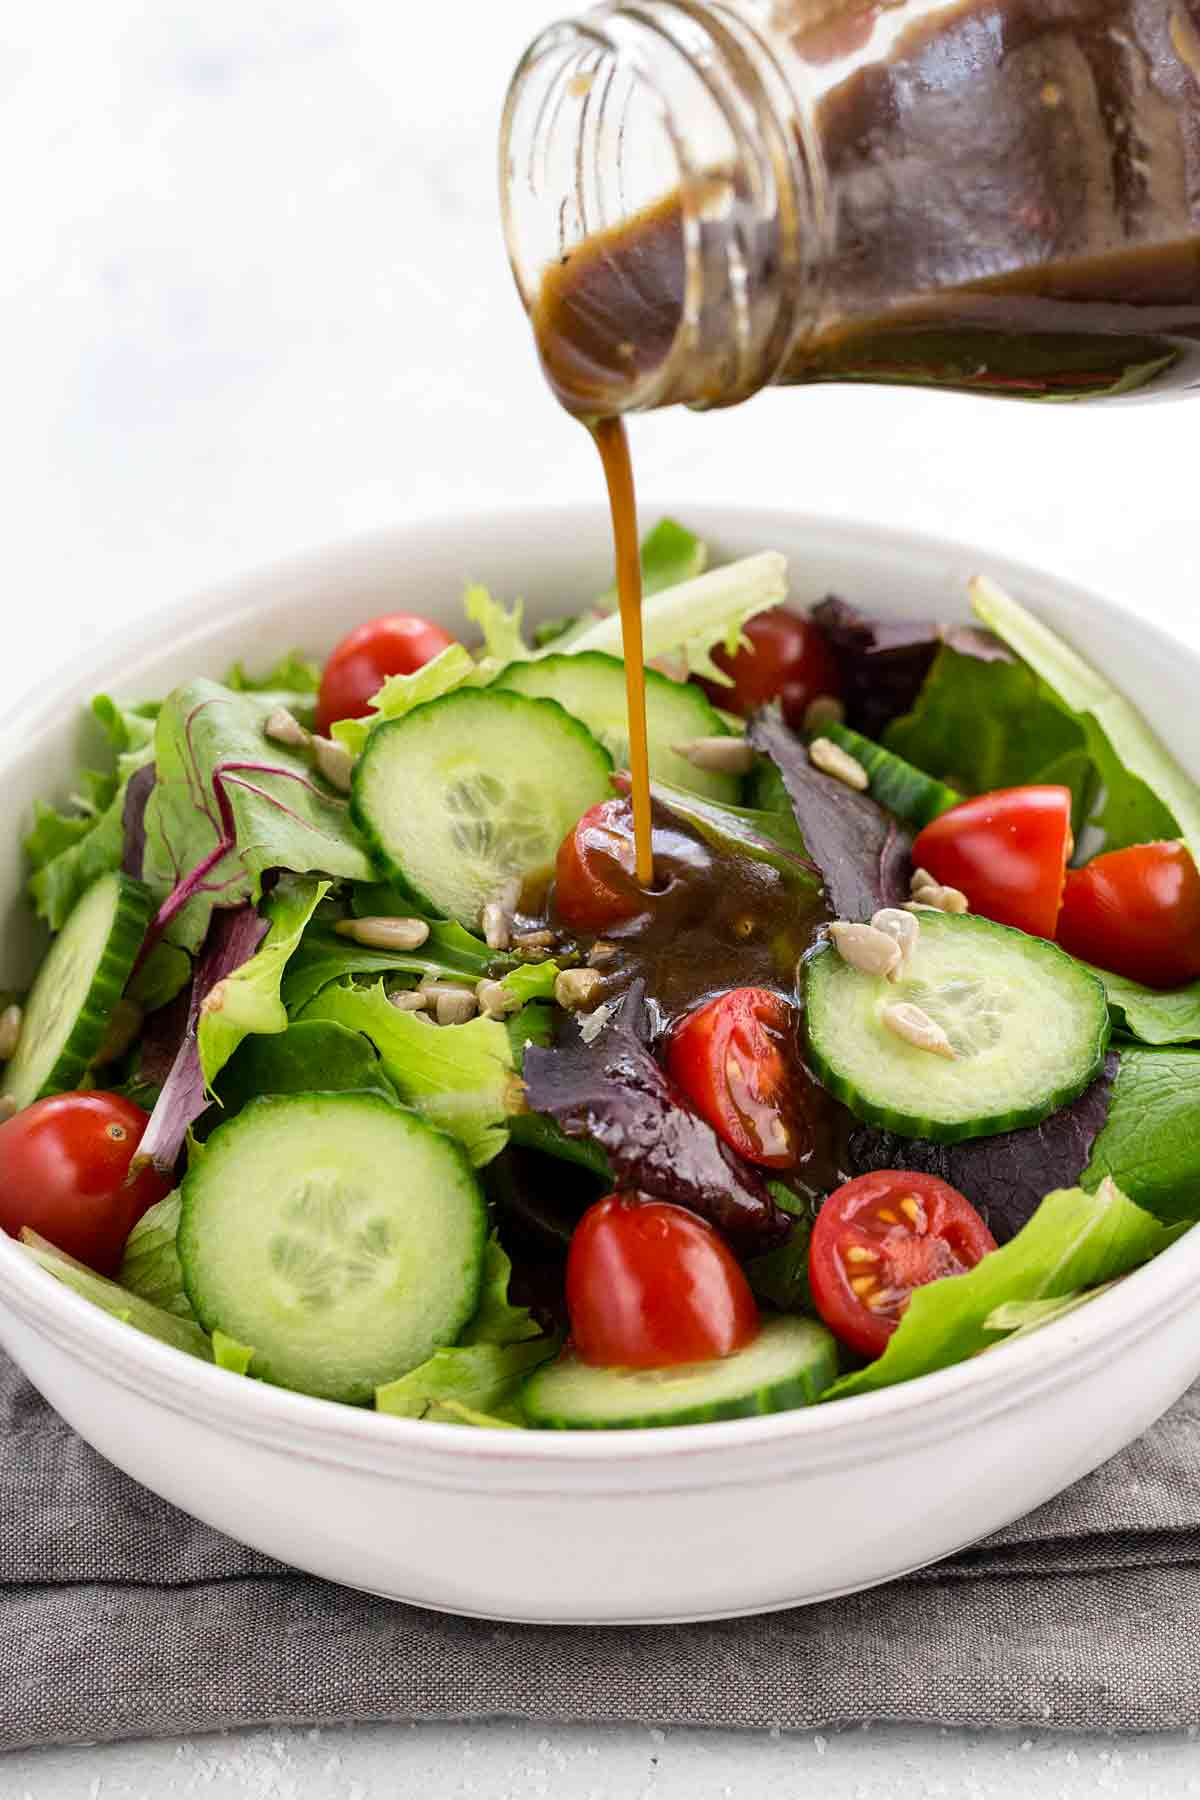 Pouring balsamic vinaigrette out of a glass jar onto a green salad